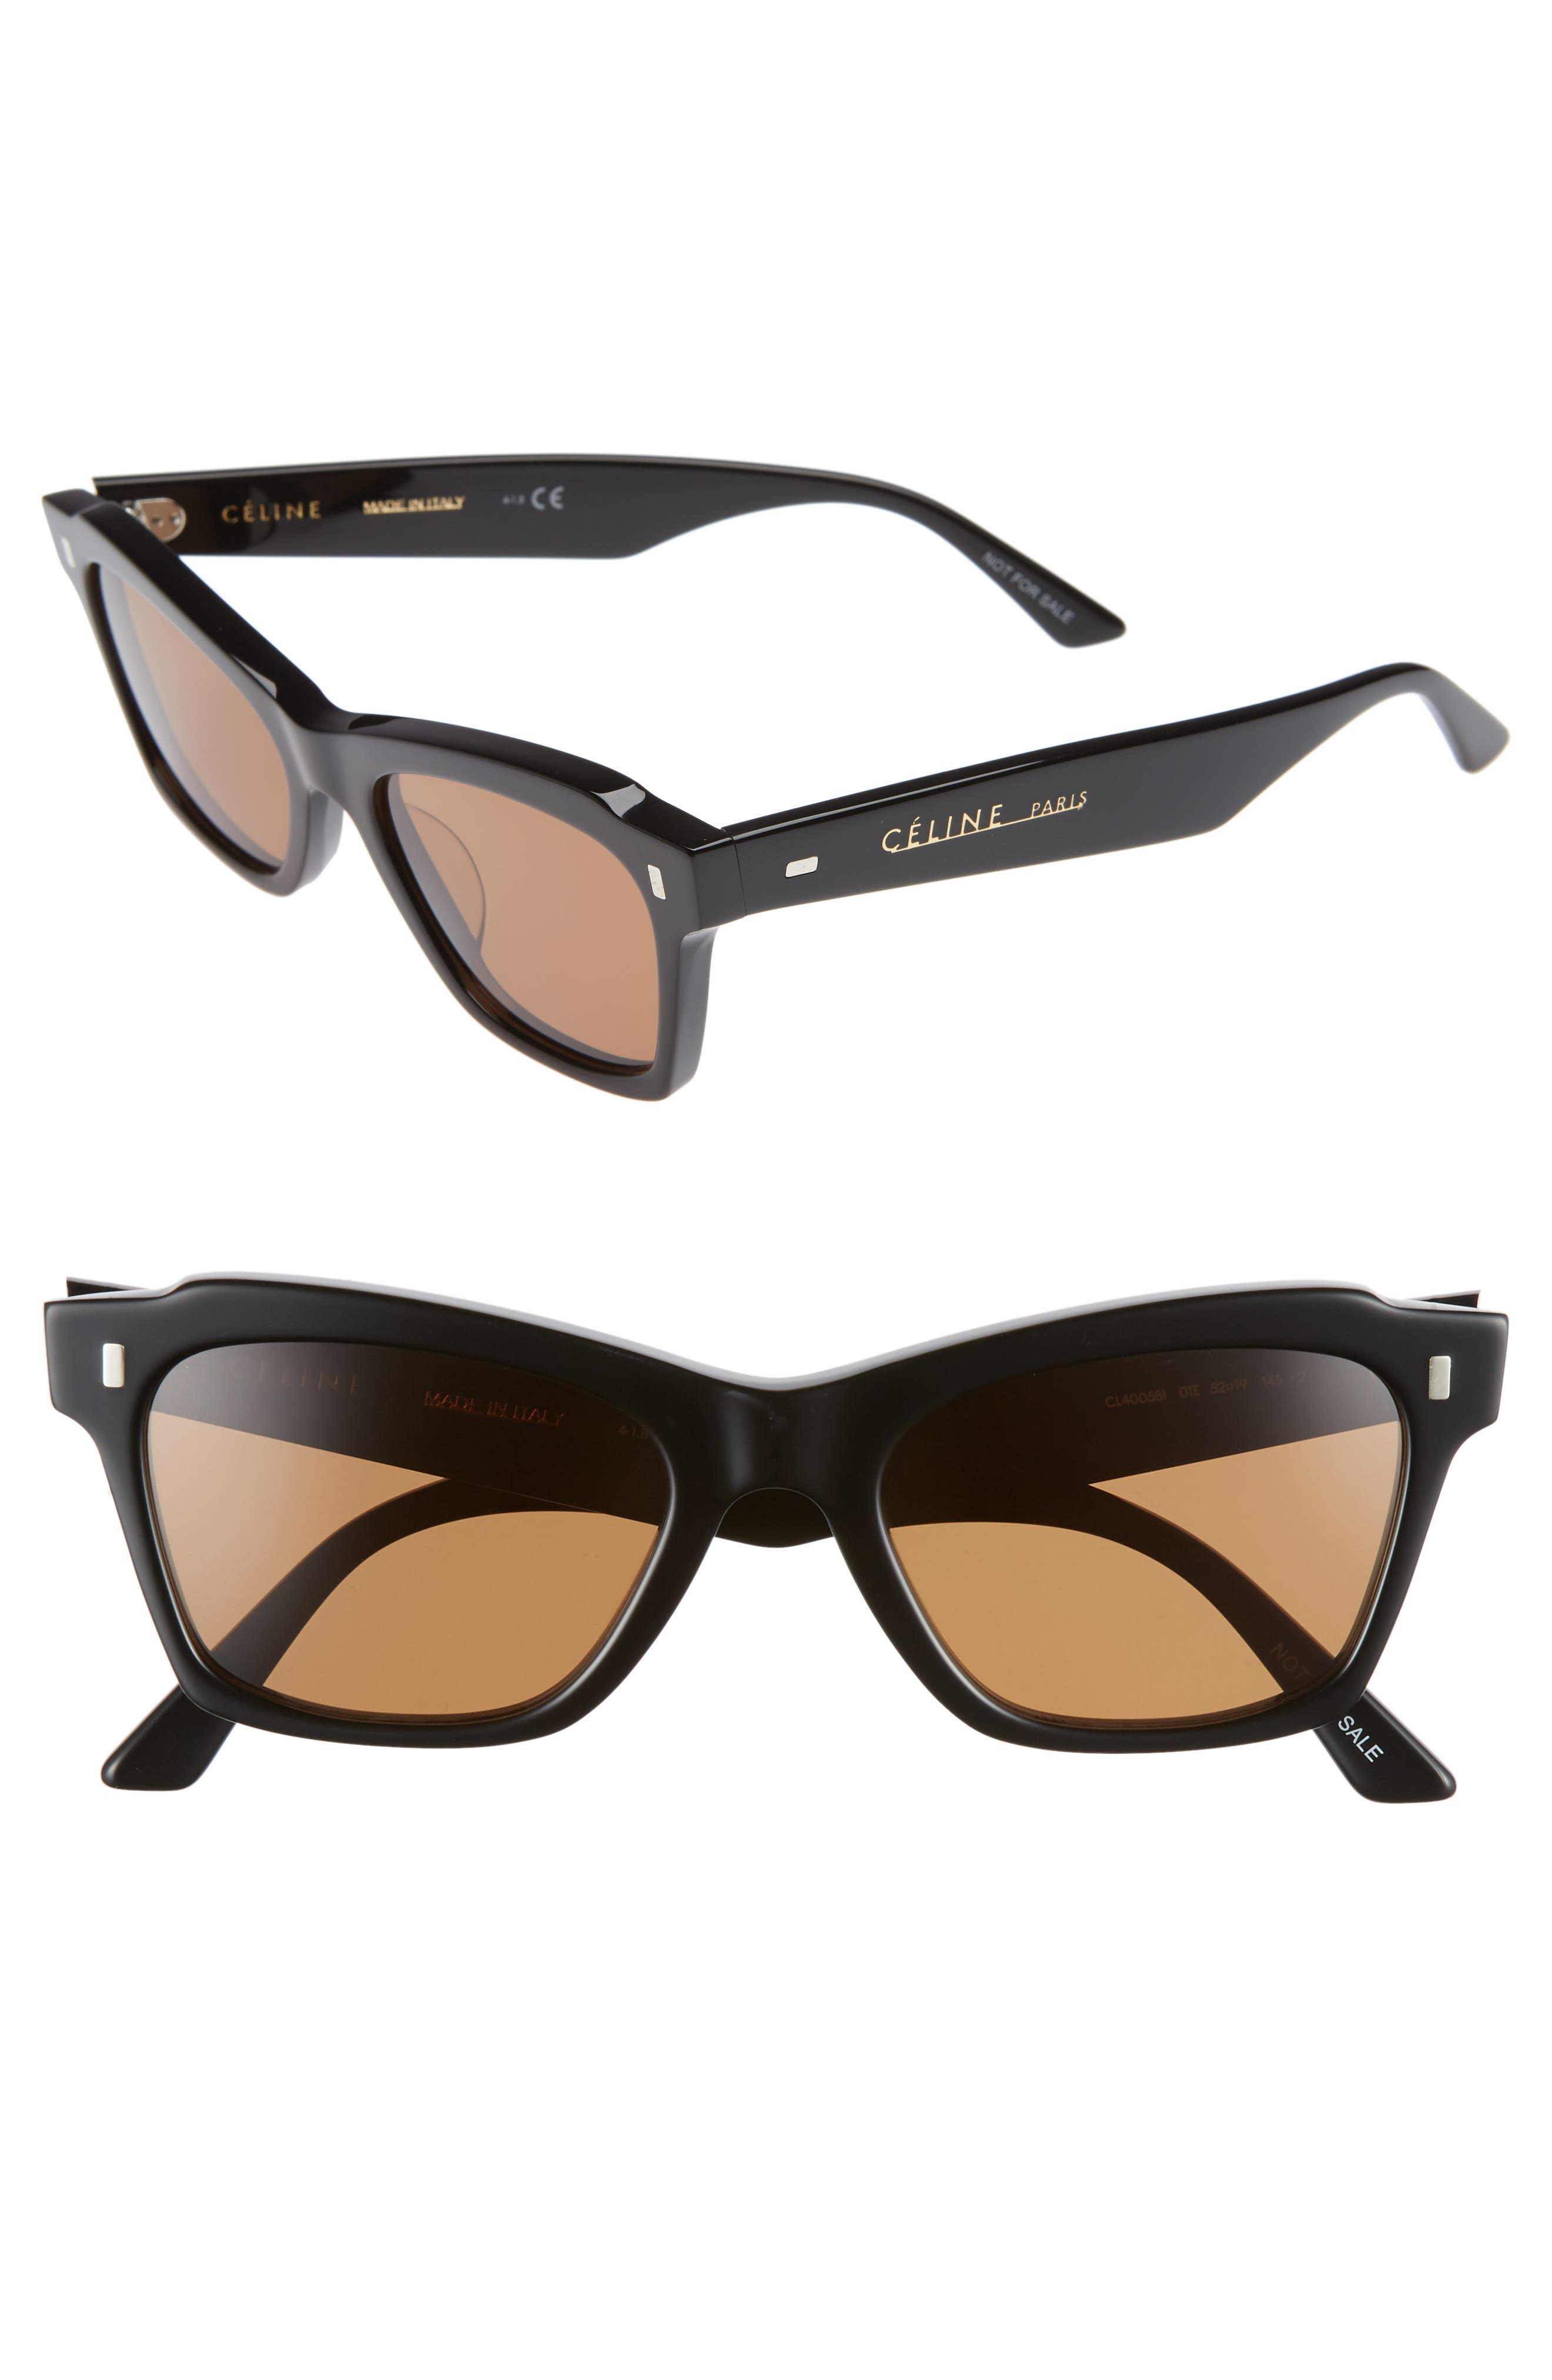 52mm Rectangle Cat Eye Sunglasses,                         Main,                         color, BLACK